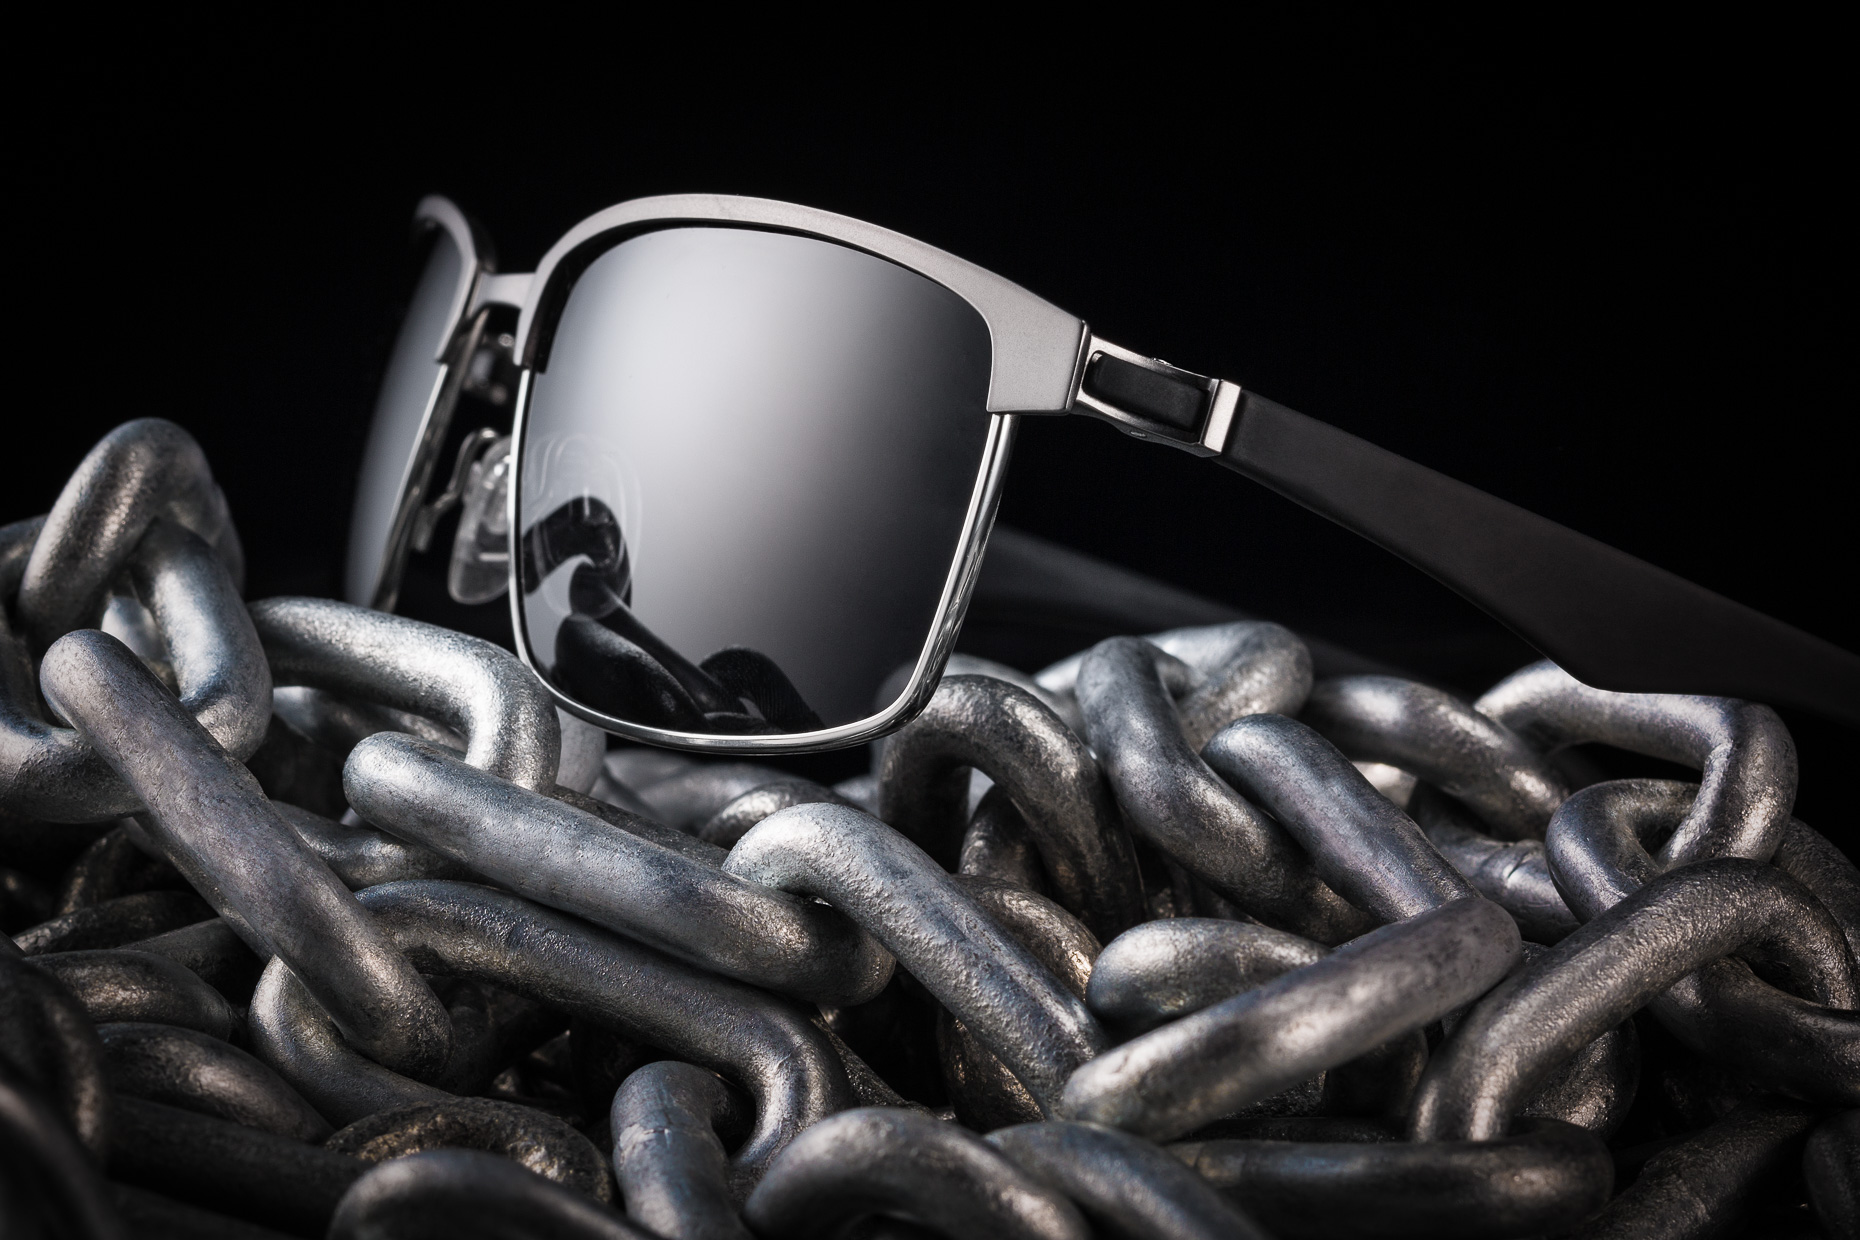 sunglasses on chainmens sunglasses conceptual photography still life